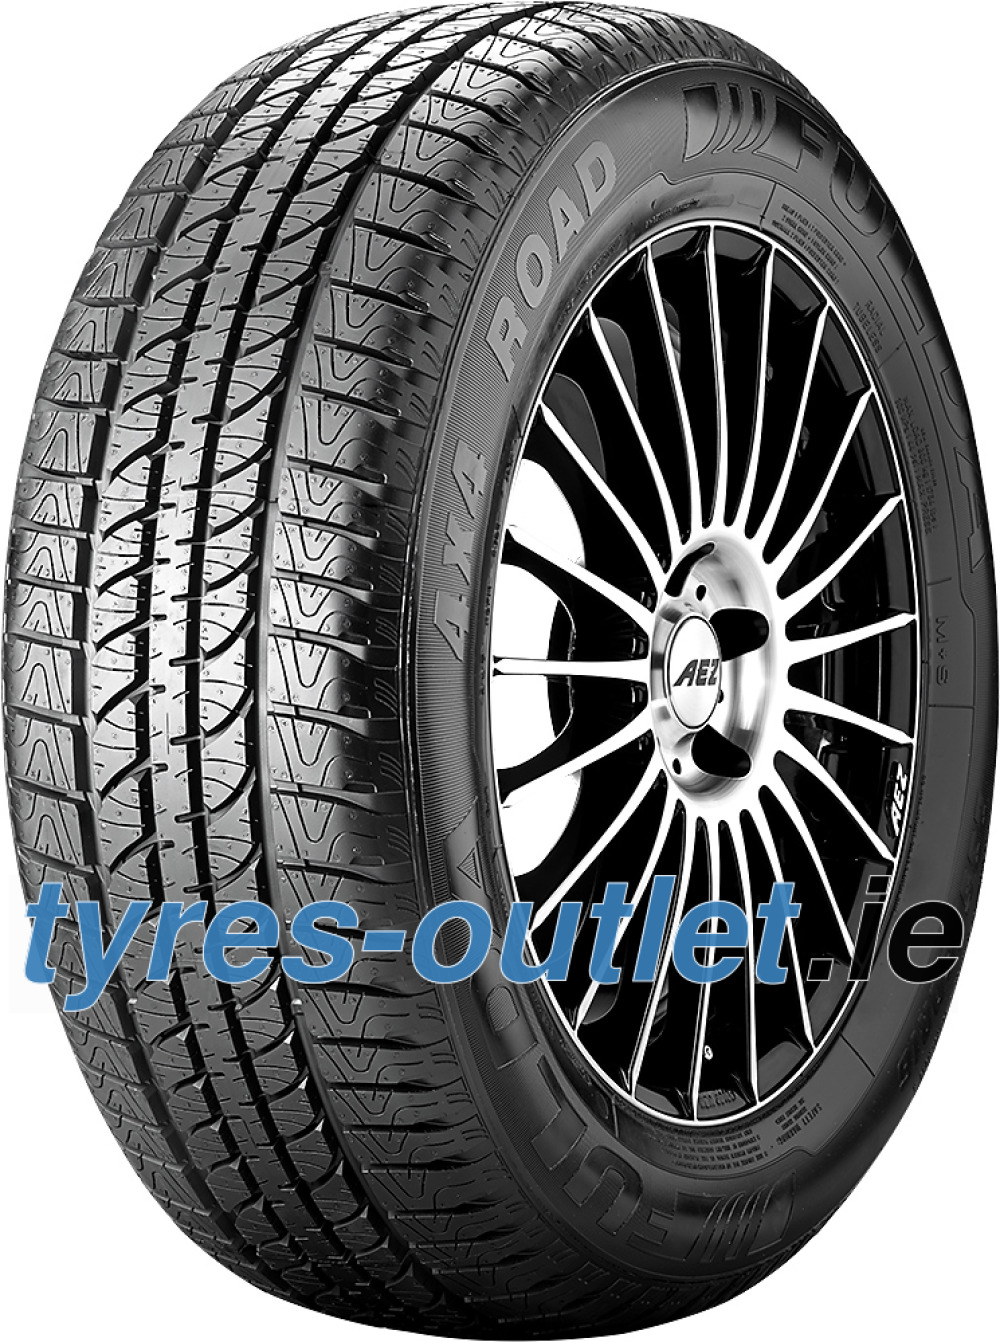 Fulda 4x4 Road ( 265/65 R17 112H , with rim protection (MFS) )